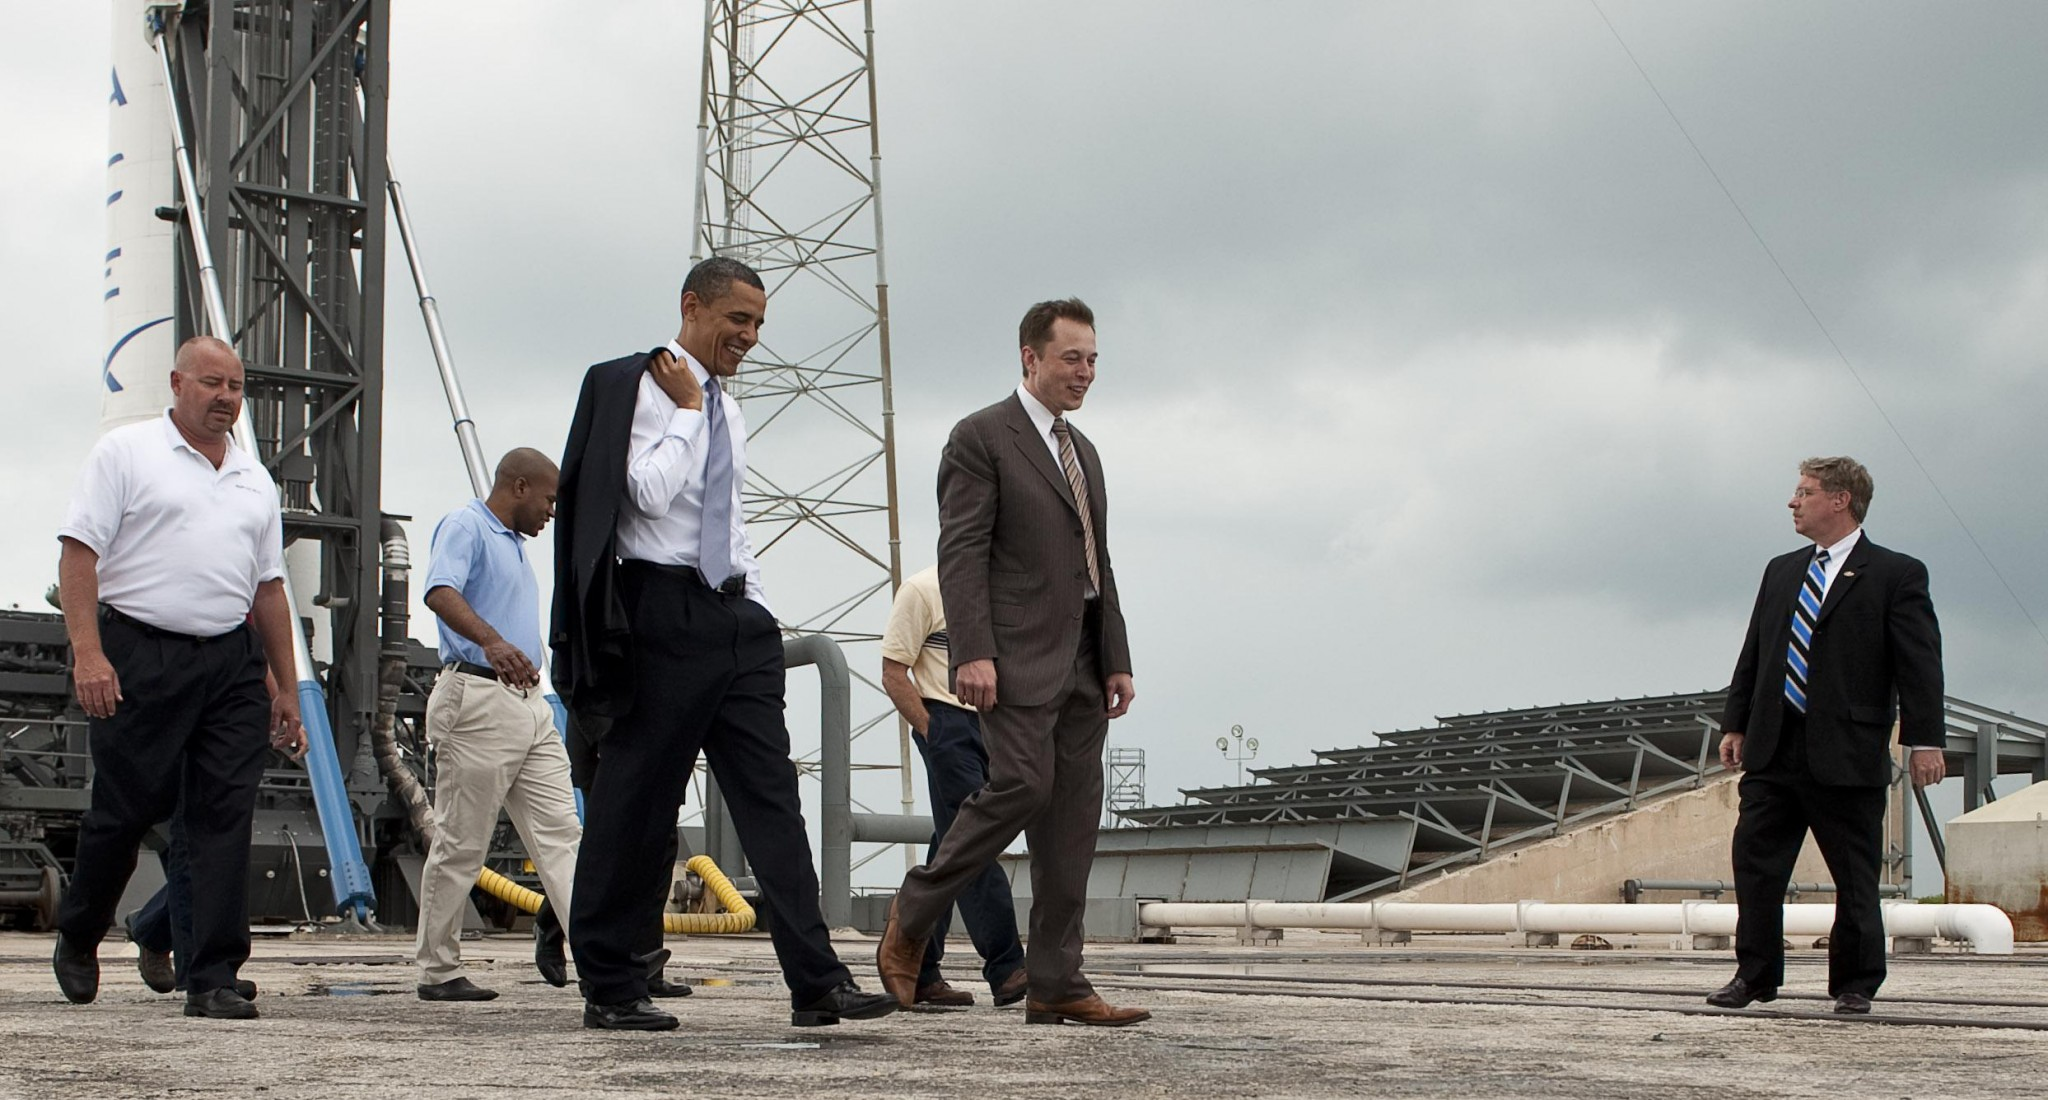 SpaceX founder Elon Musk (second to right) pictured with former US president Barack Obama at a SpaceX launch site in 2010. Photo: NASA // Wikipedia.